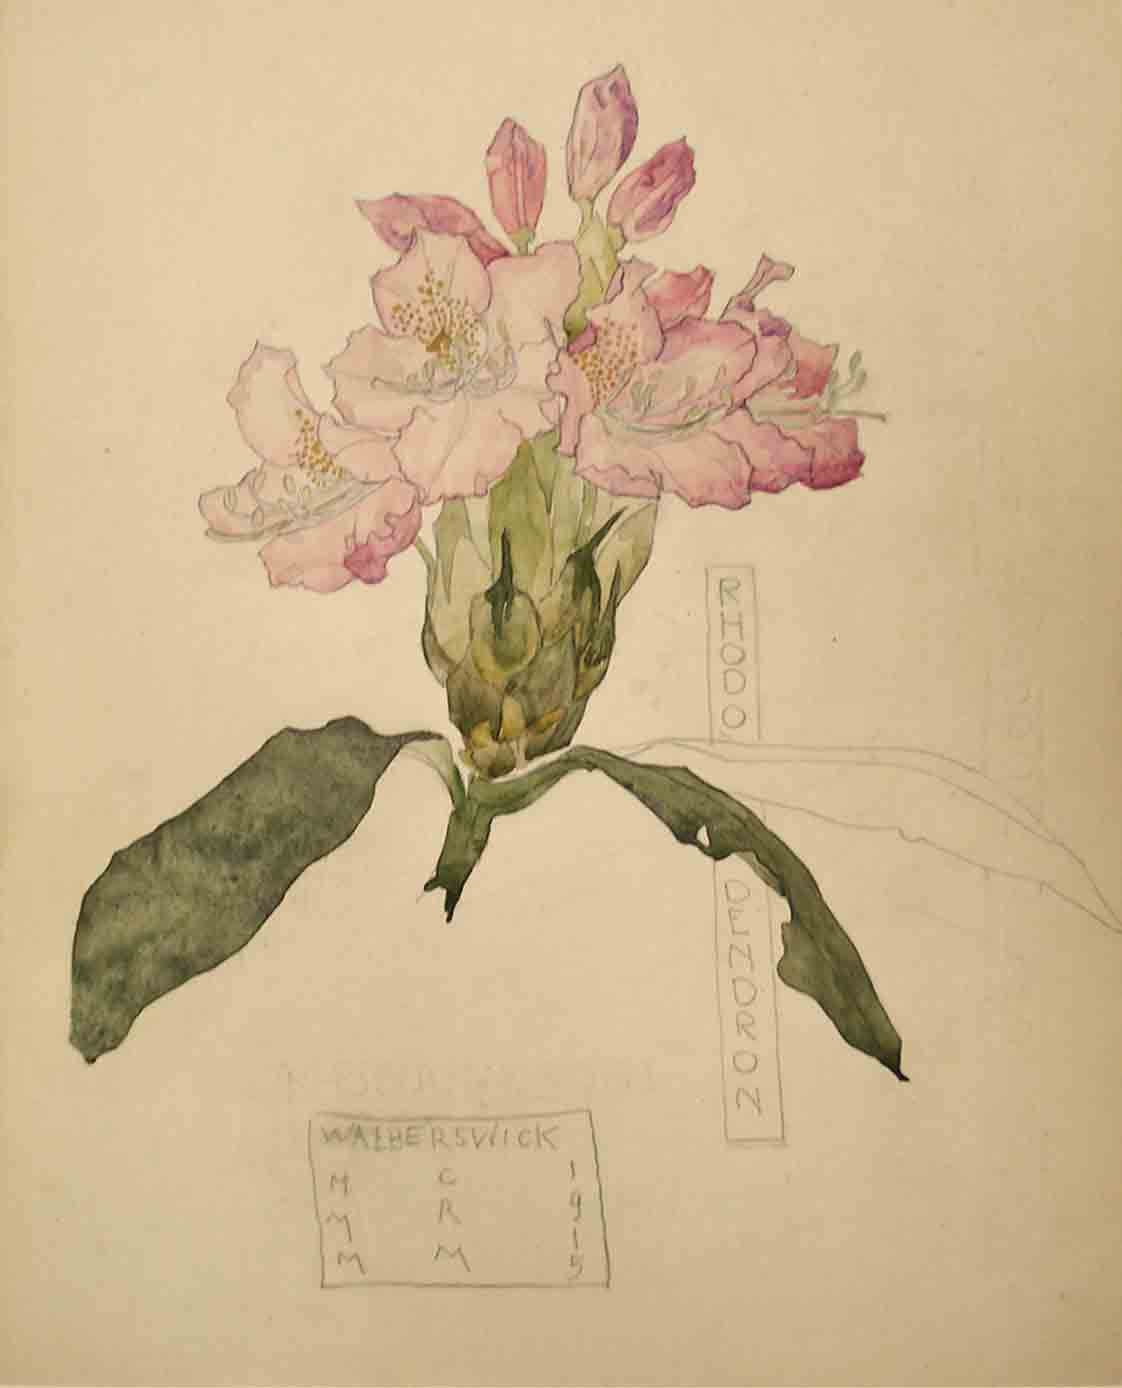 Charles Rennie Mackintosh Rhododendron Walberswick, 1915 Pencil and watercolor on paper 10 x 8 inches SOLD